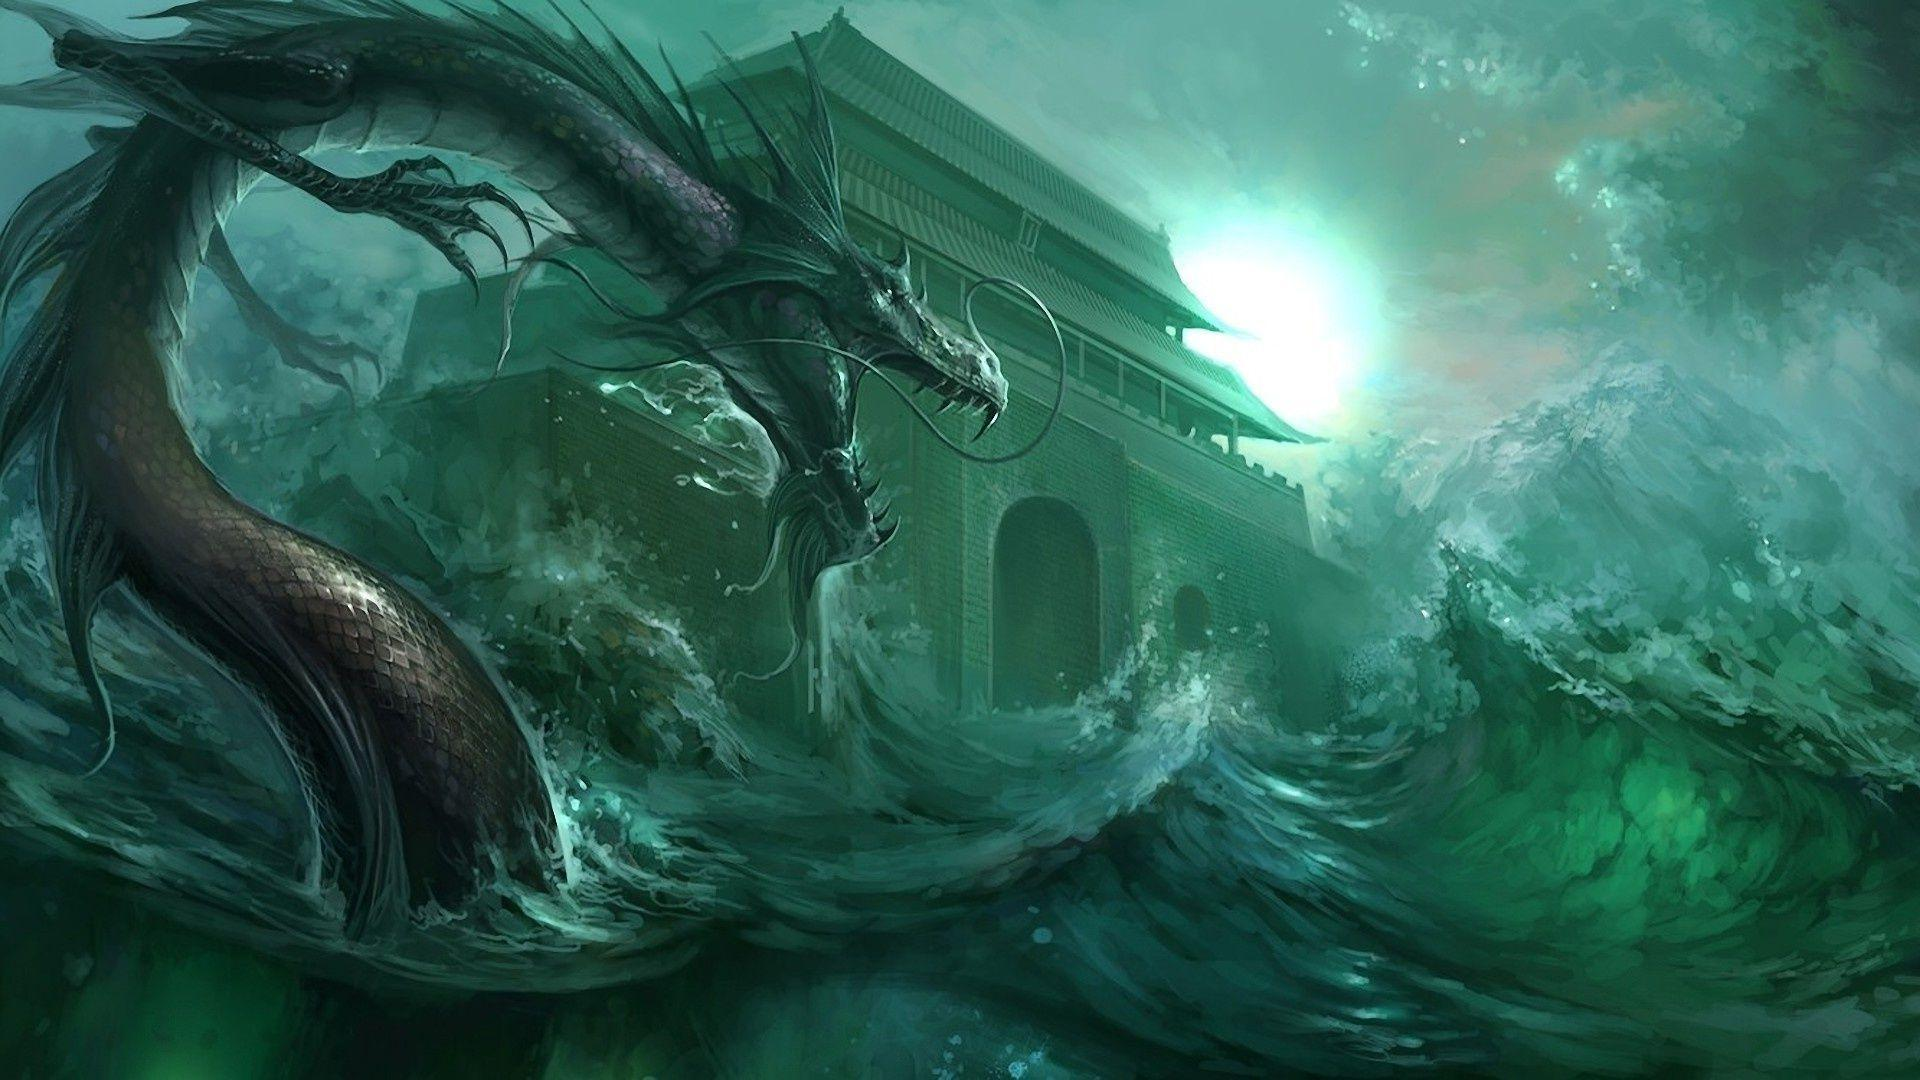 Gallery for gt water dragon wallpaper hd